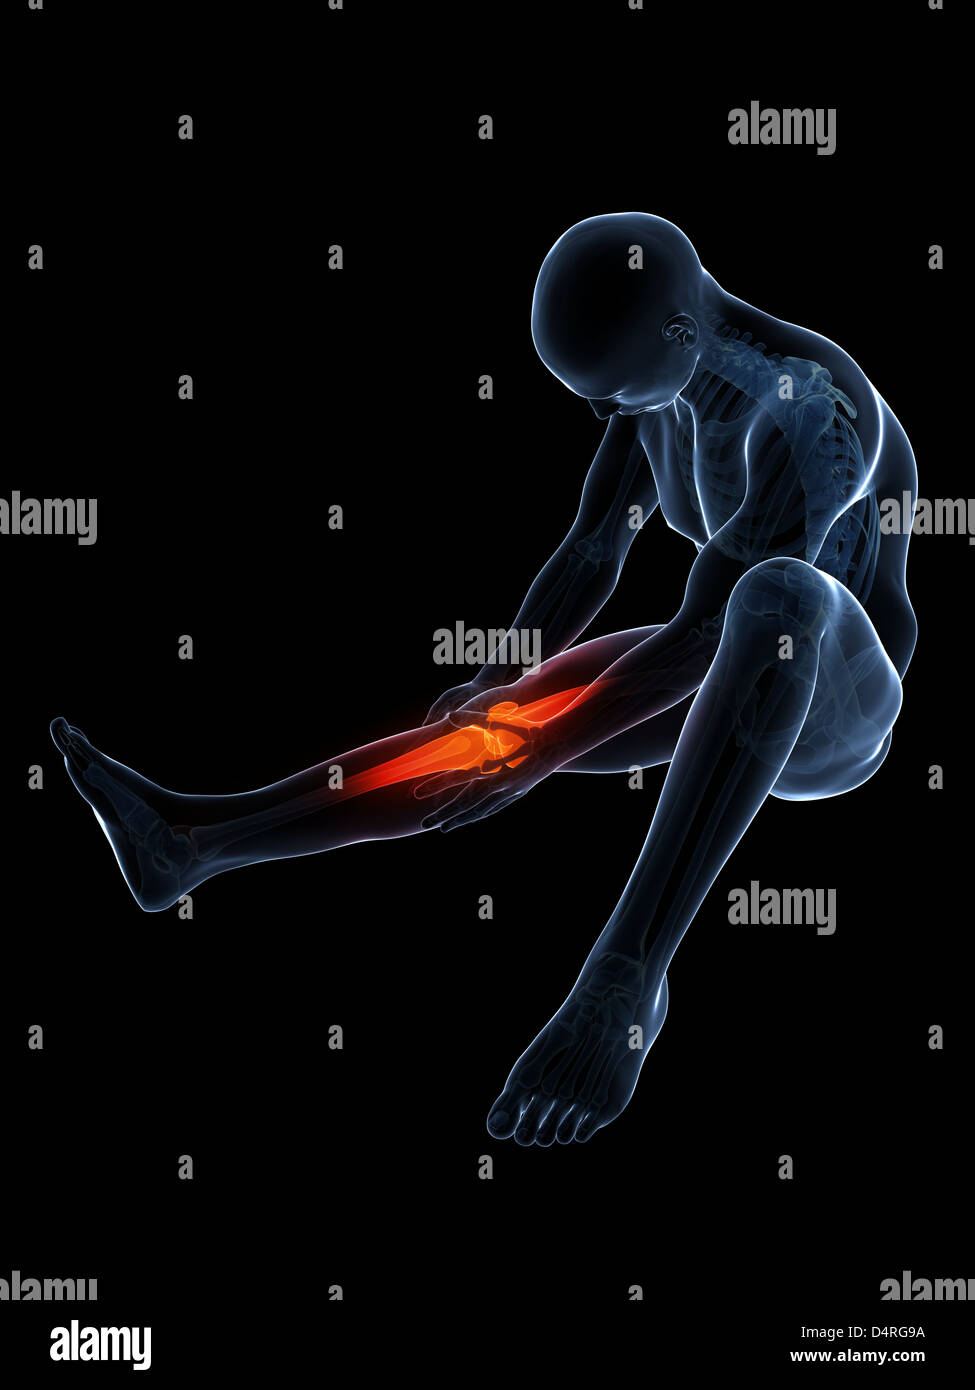 X ray foot hip accident health anatomical symptom femur stock photos highlighted knee joint stock image ccuart Images